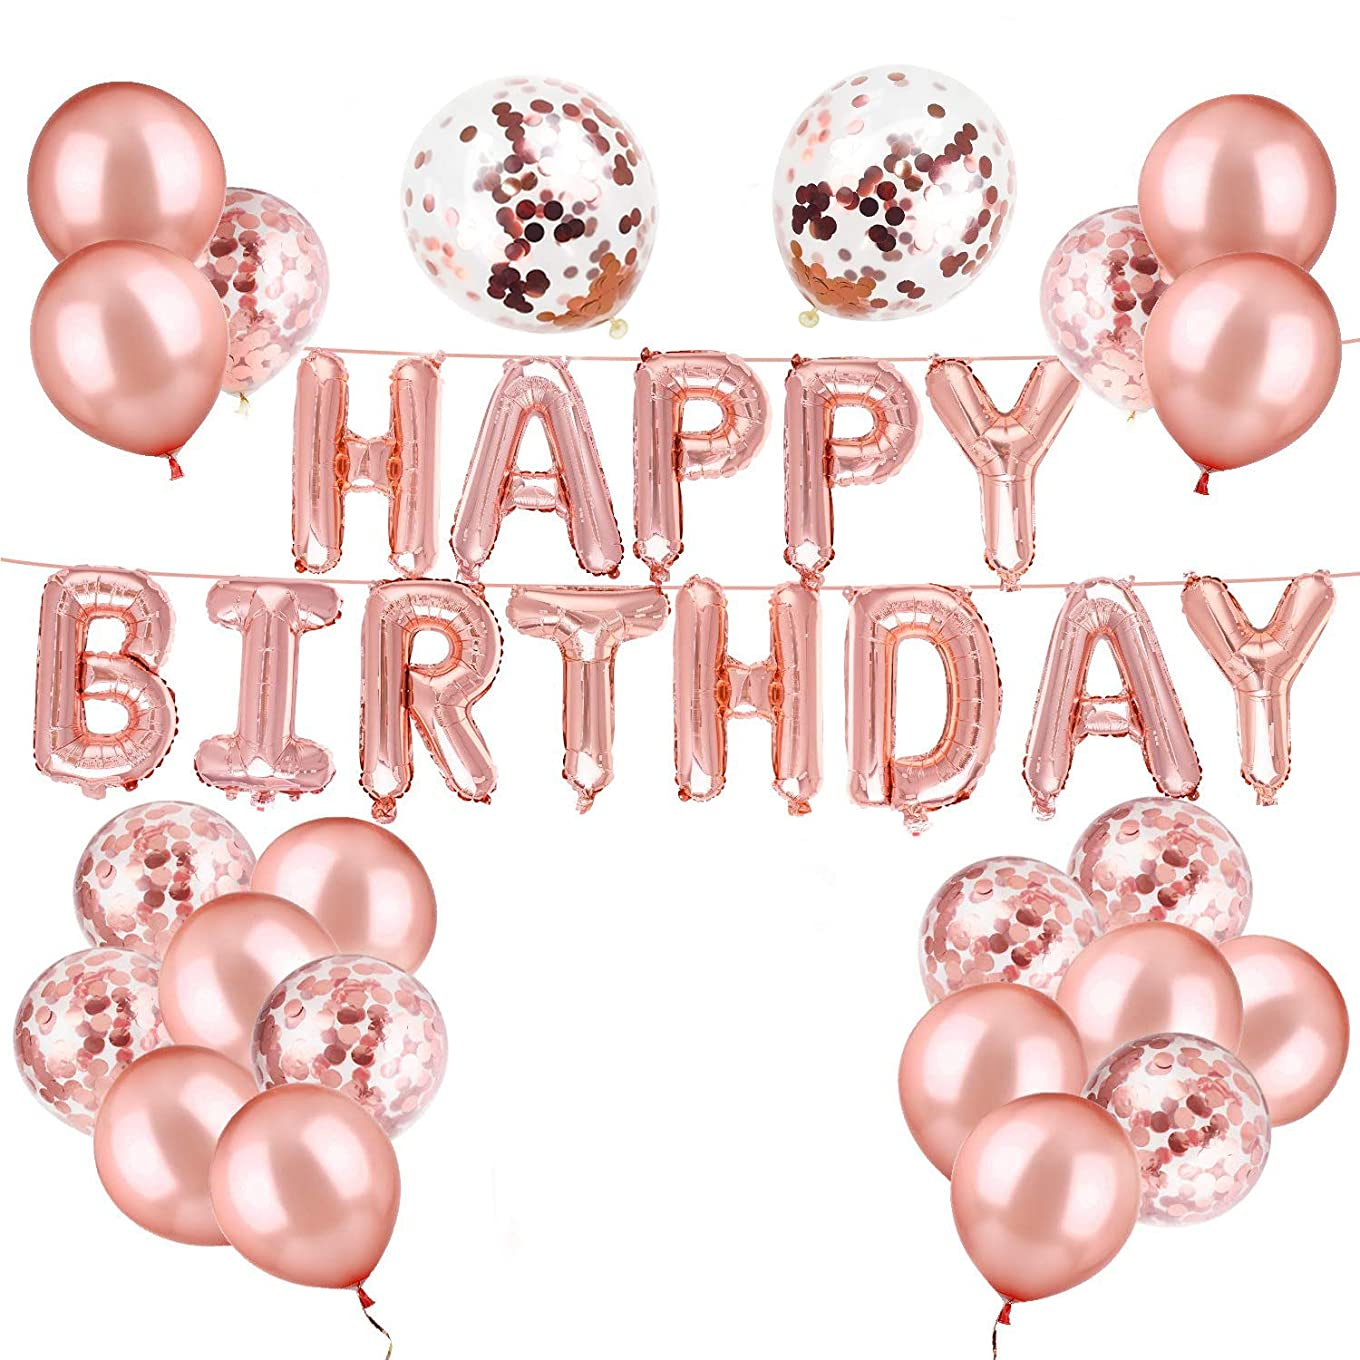 luckypopy Rose Gold Happy Birthday Balloons Confetti Balloons Kit Birthday Party Decorations and Supplies yuqdgmzuevlk